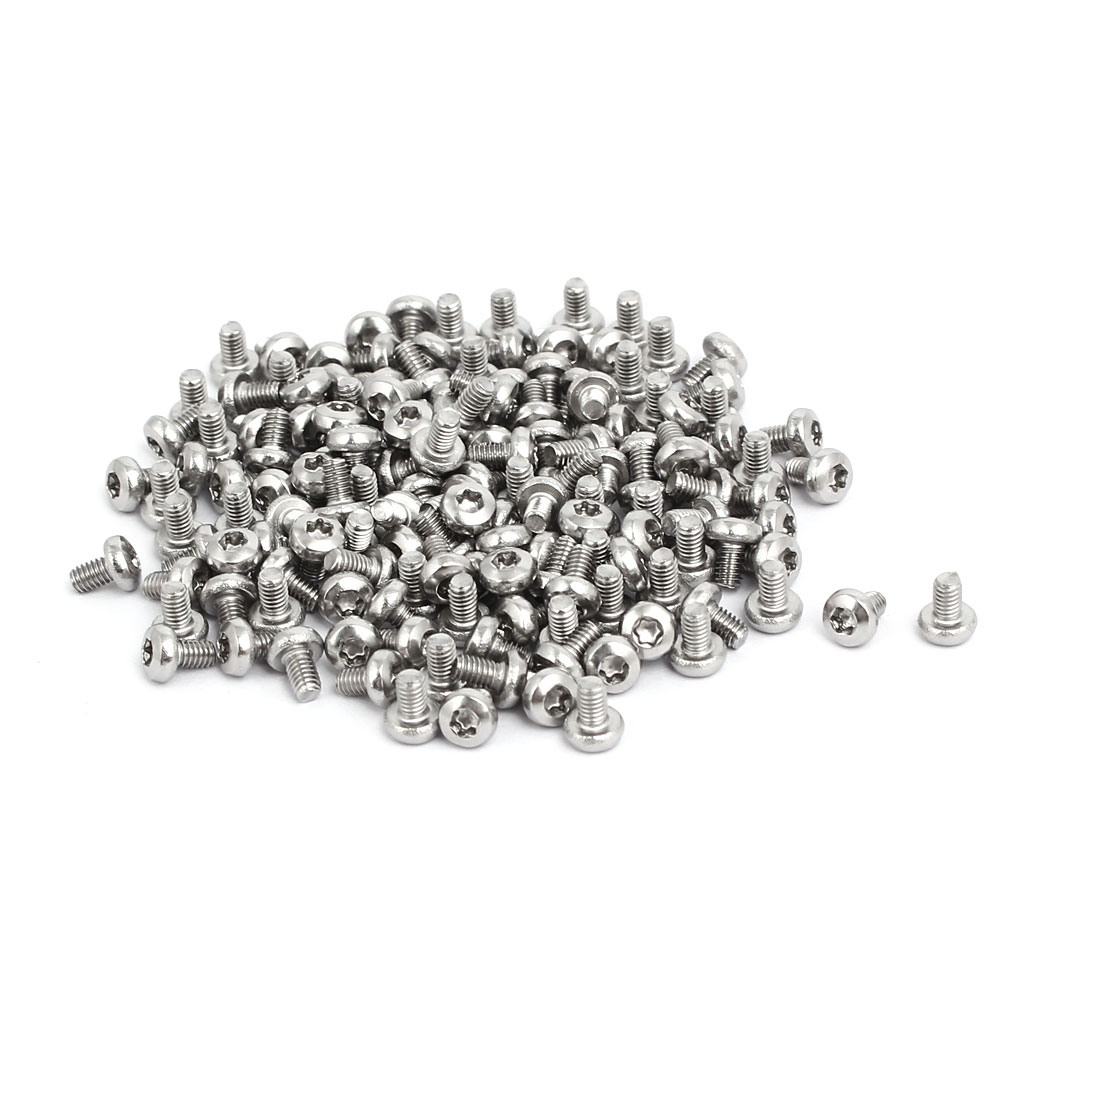 M2.5x4mm 304 Stainless Steel Button Head Torx Screws Bolts T8 Drive 150pcs